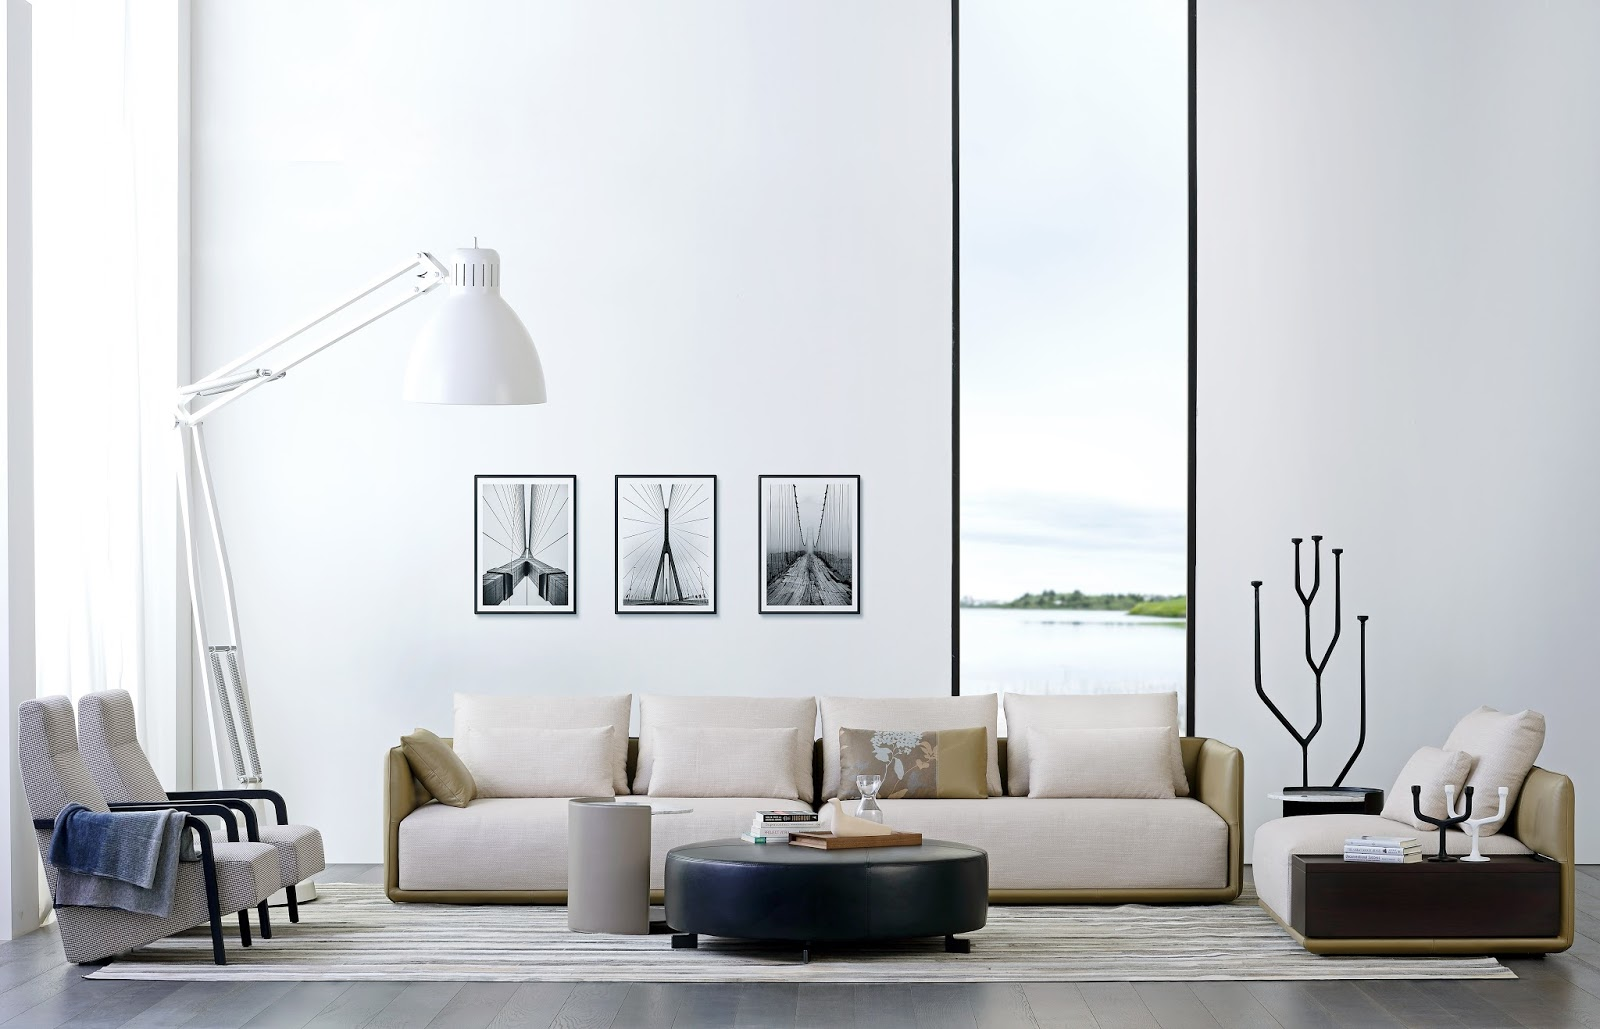 I Am Still On The Lookout For That One Unique Piece Of Statement Furniture  To Complete My Living Room. Its The One Room Left In The House That I Feel  Has An ...